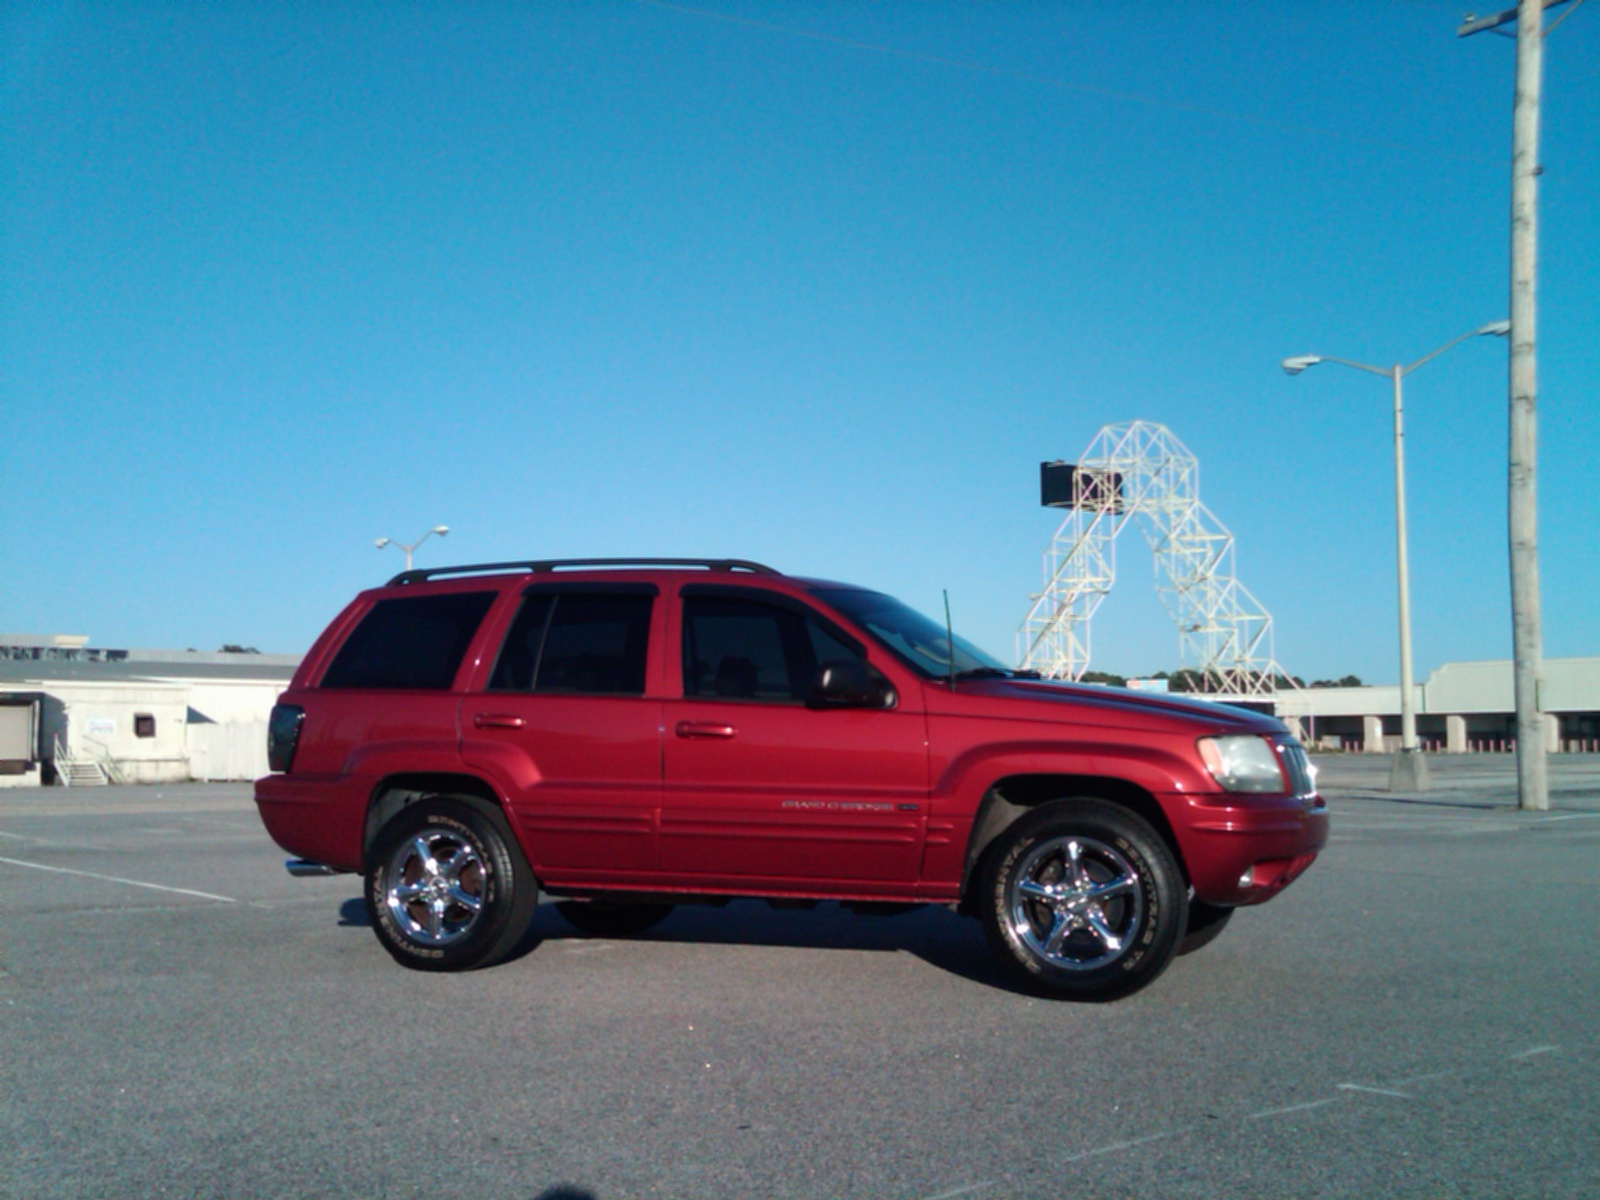 2002 jeep grand cherokee exterior pictures cargurus. Cars Review. Best American Auto & Cars Review